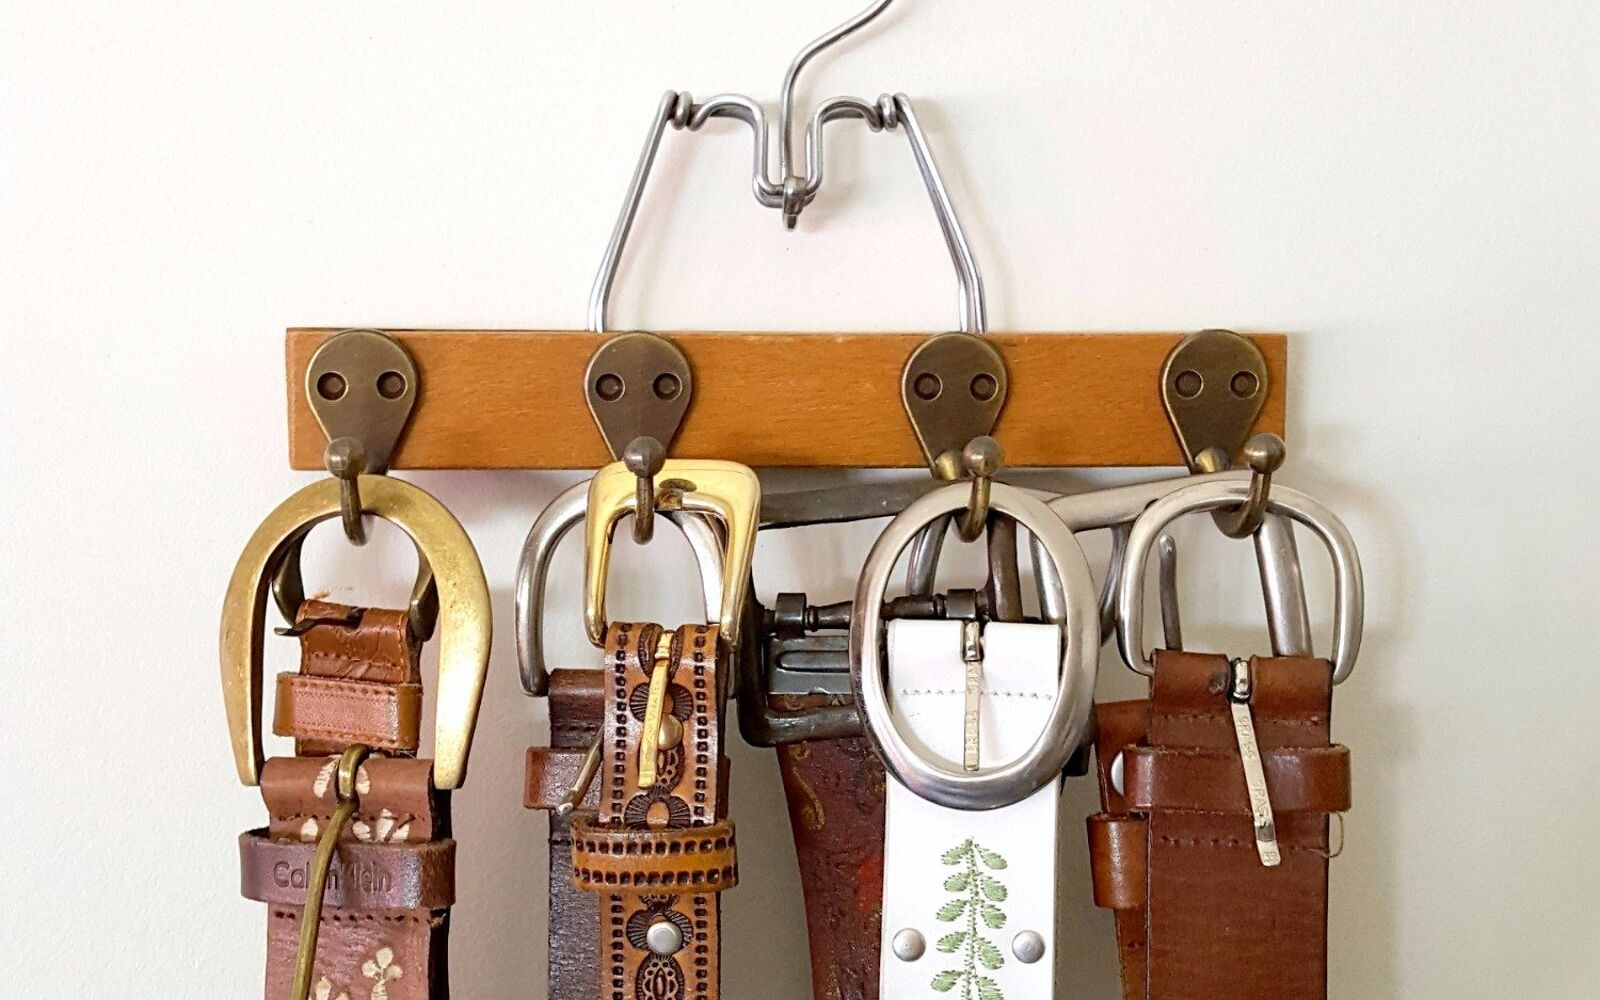 s post, Get Your Belts In Order With A Mini Hanger